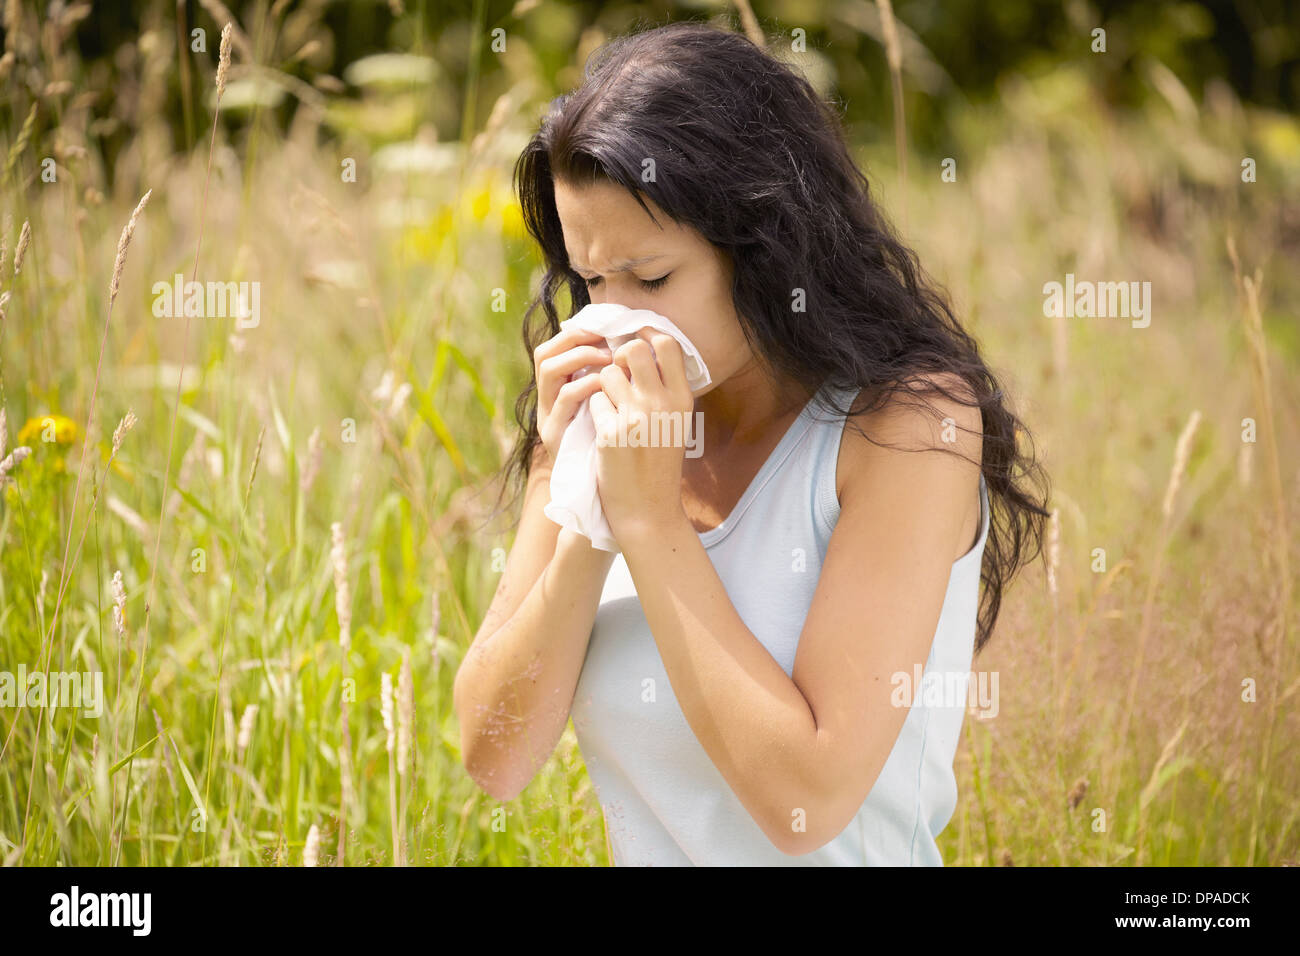 Girl wiping nose with tissue - Stock Image